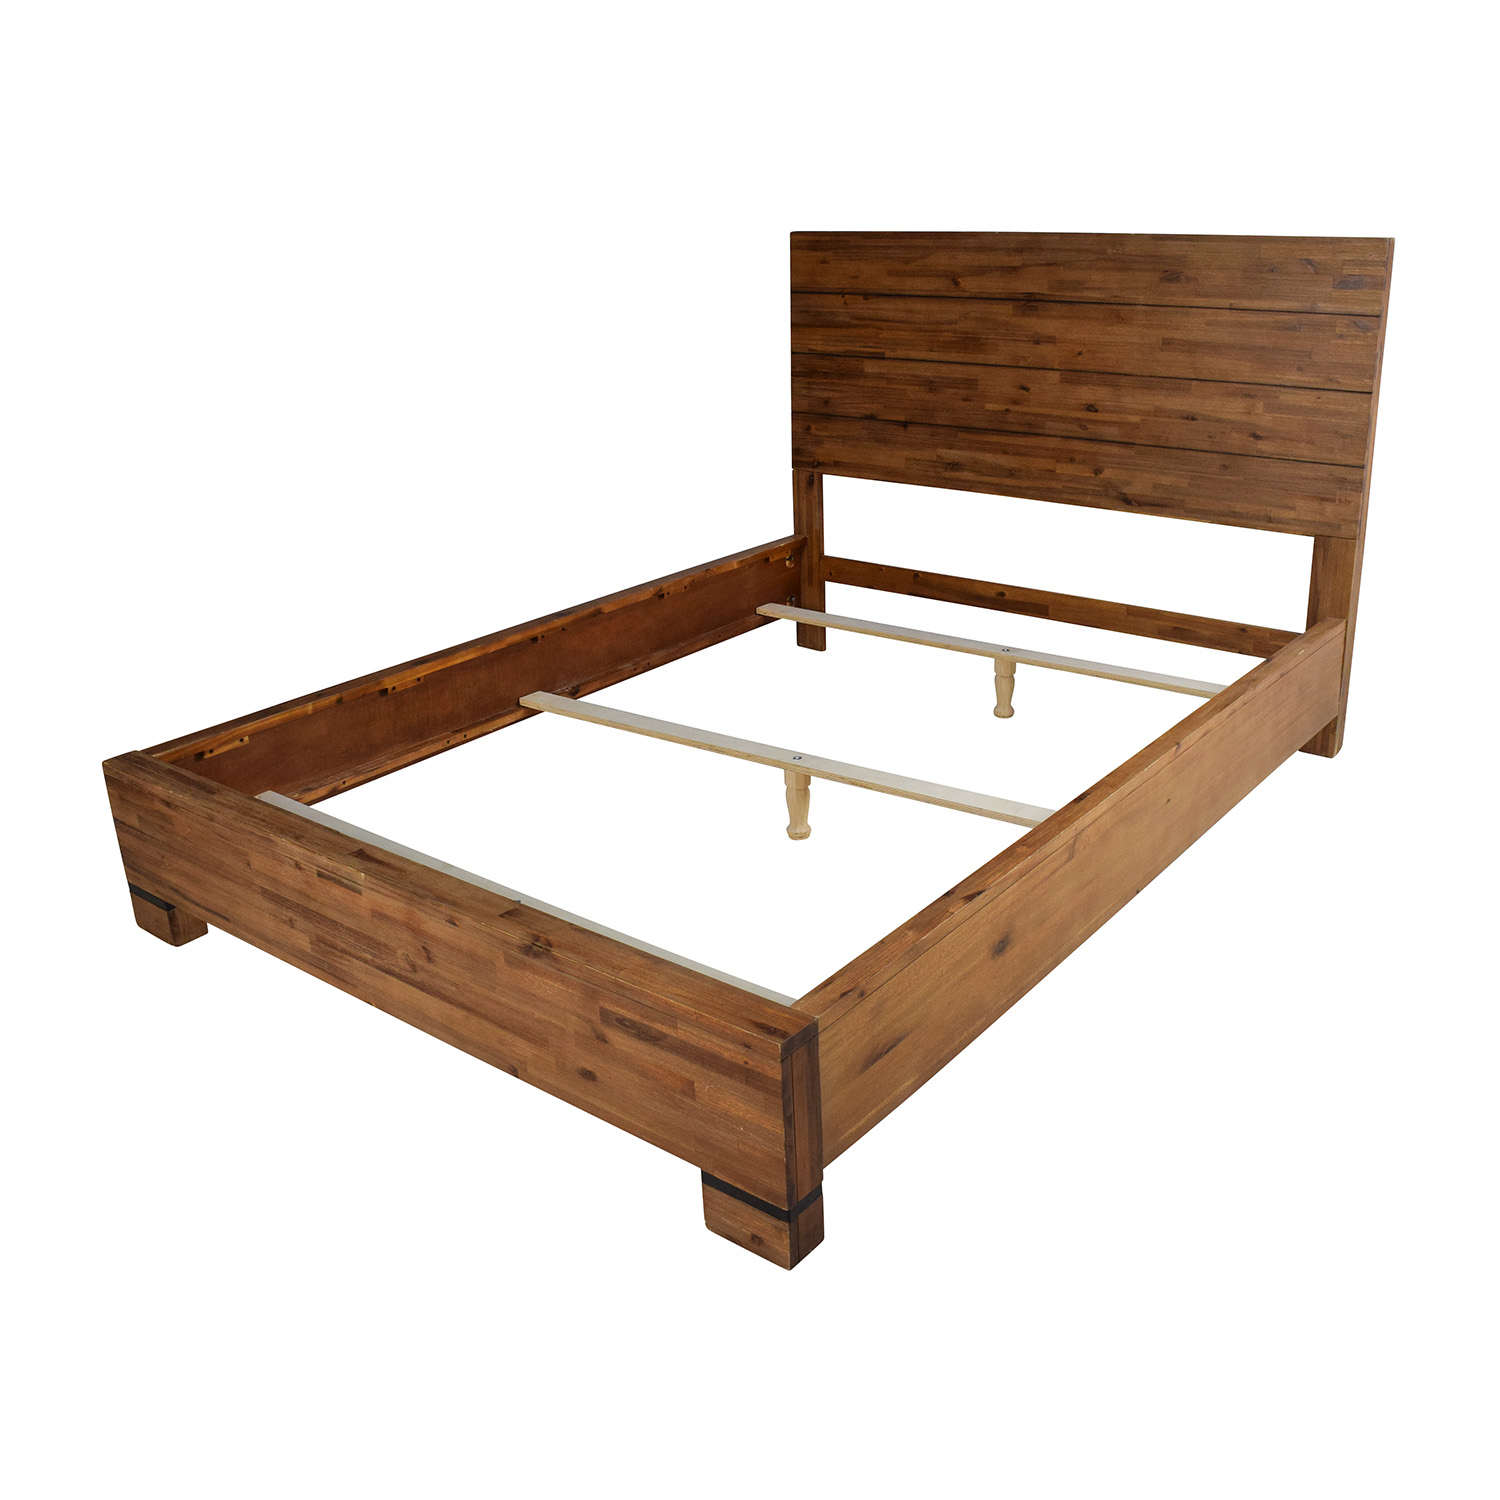 Bed Frame 50 Off Macy 39s Macy 39s Champagne Queen Bed Frame Beds